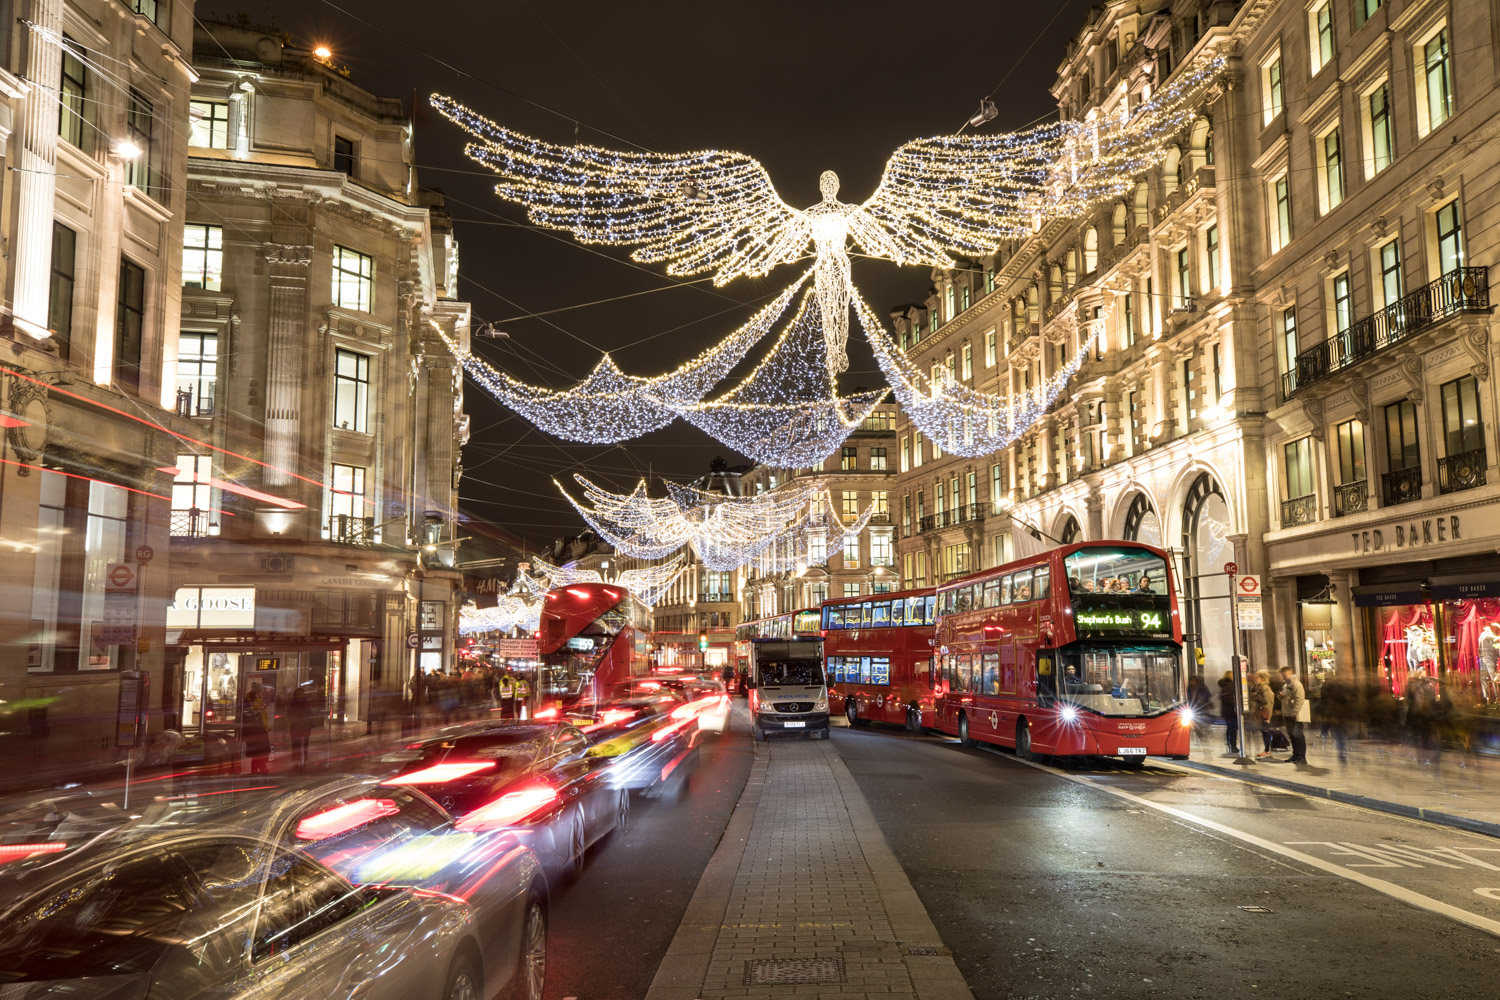 Image: London Xmas Lights © Jeremy Flint